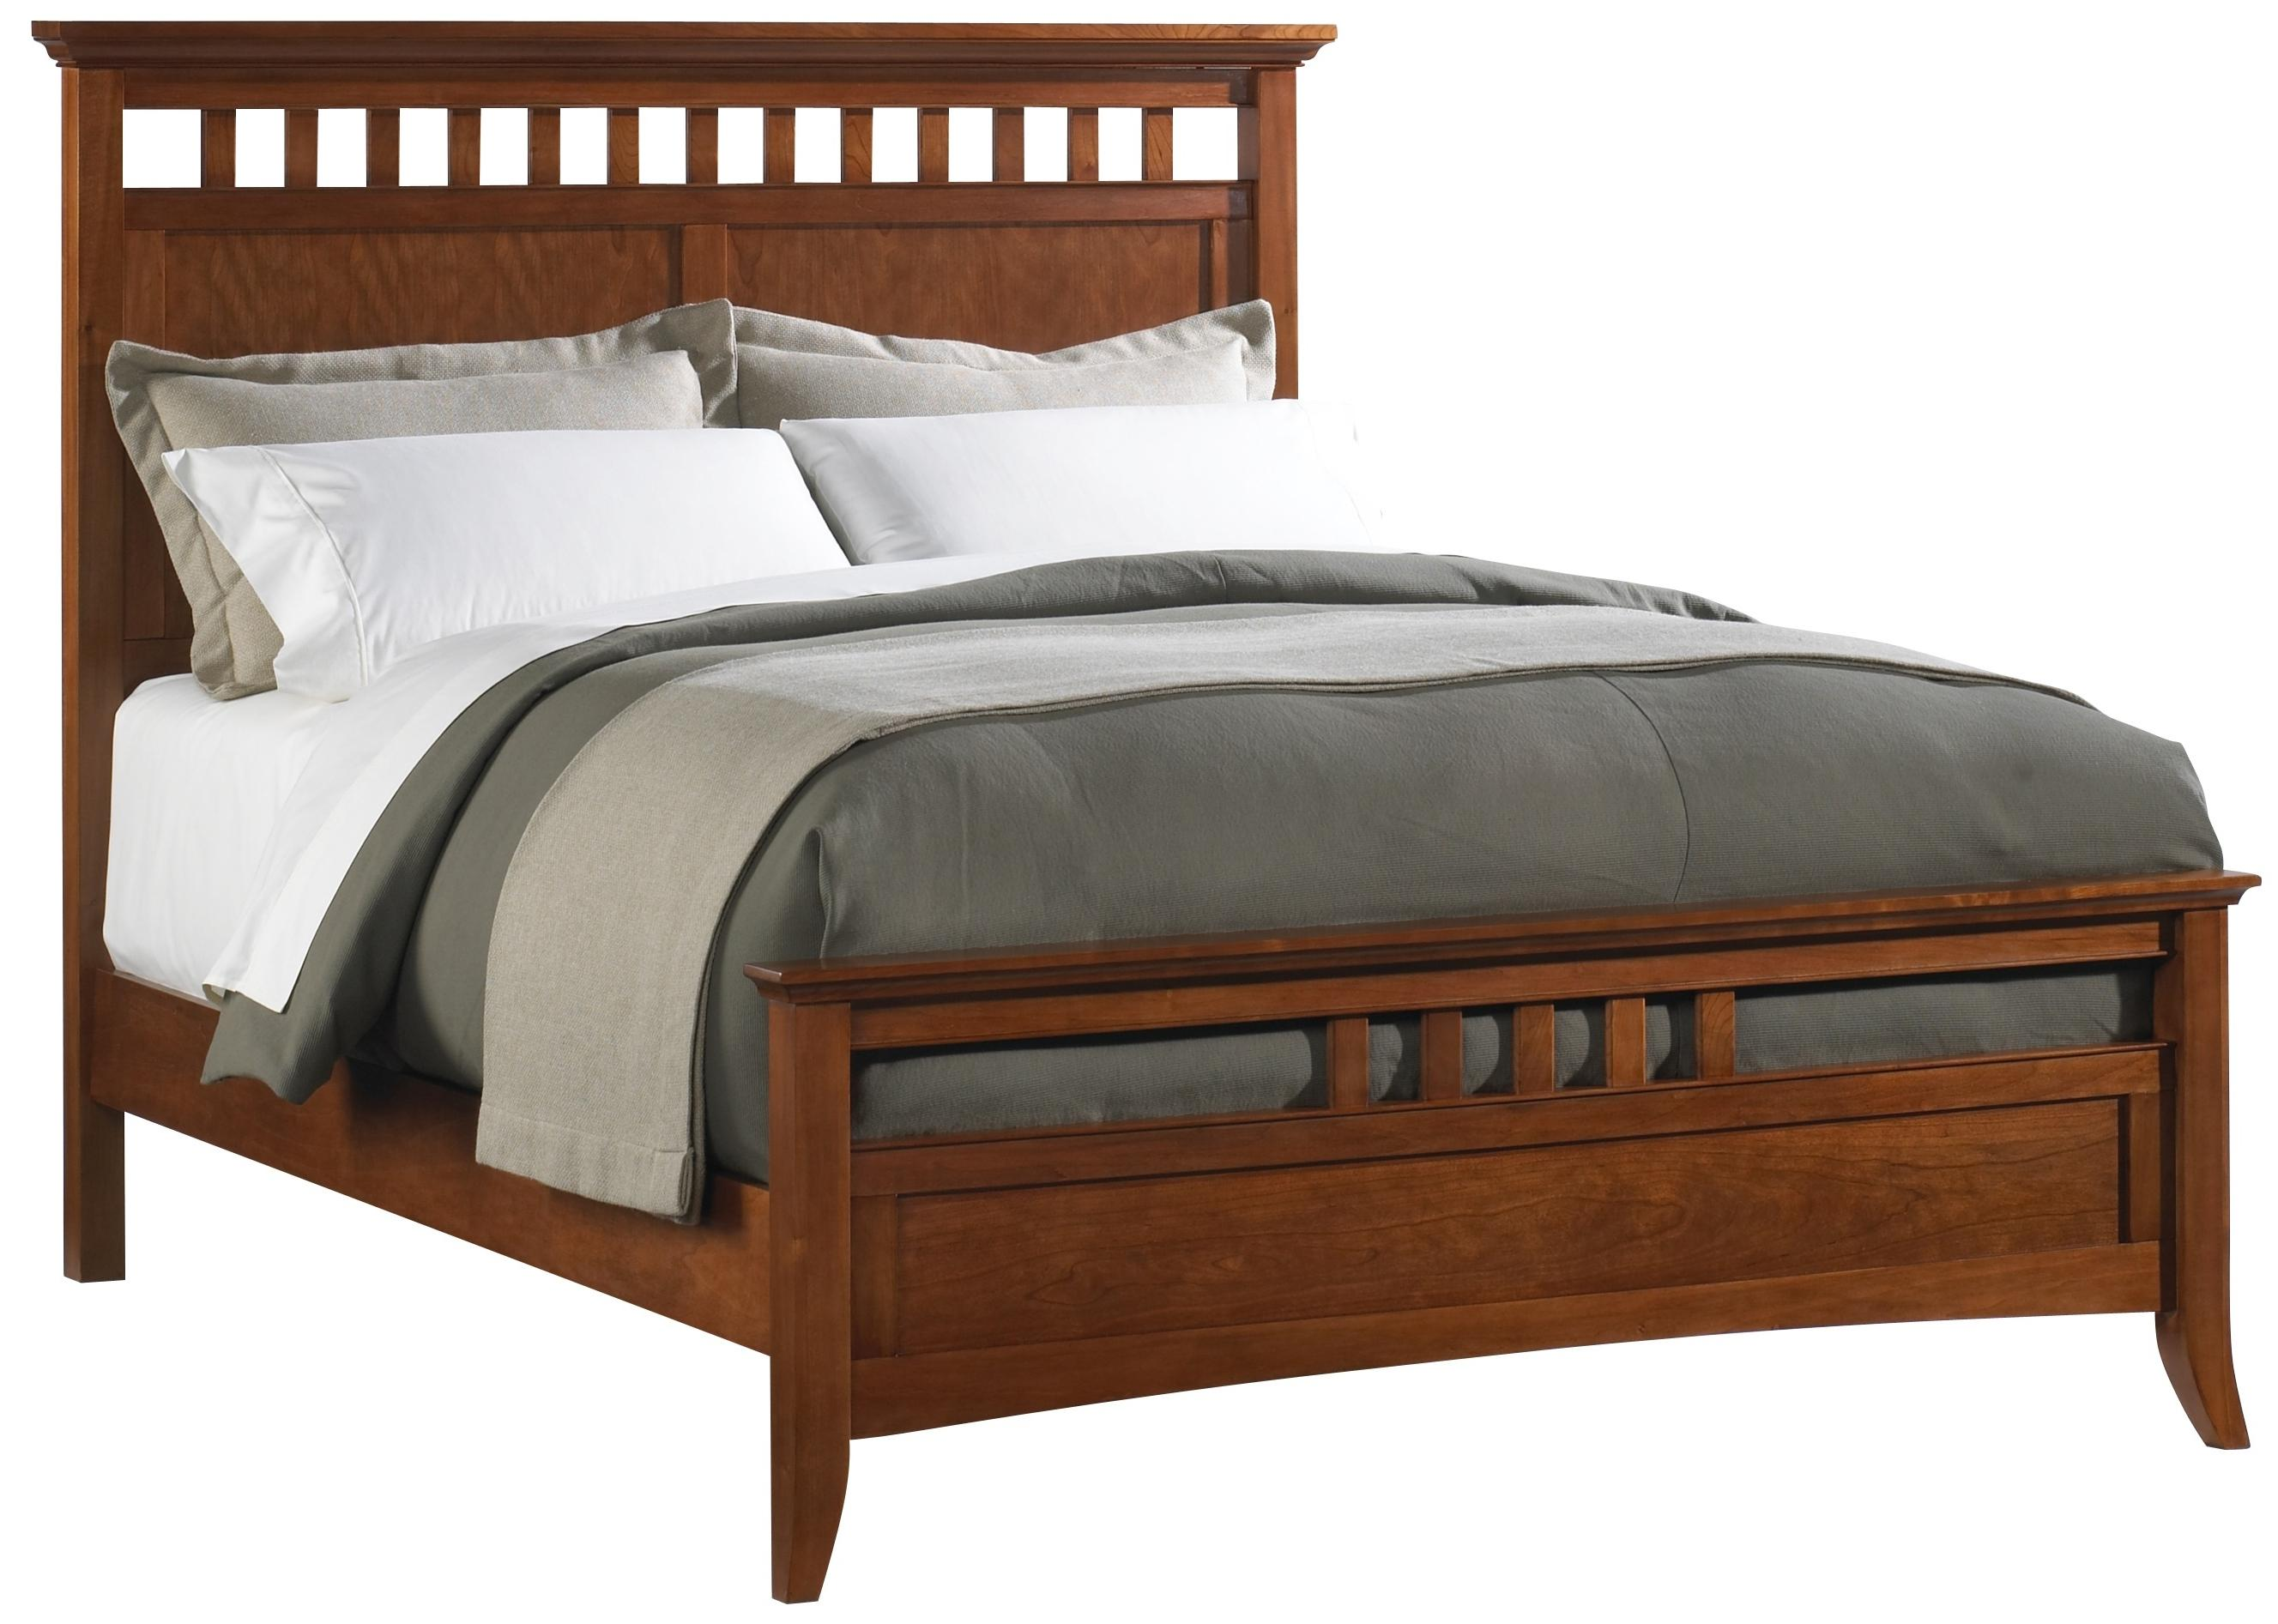 Cresent Fine Furniture Cresent Classics - Modern Shaker King Panel Bed - Item Number: 1331KB+KR